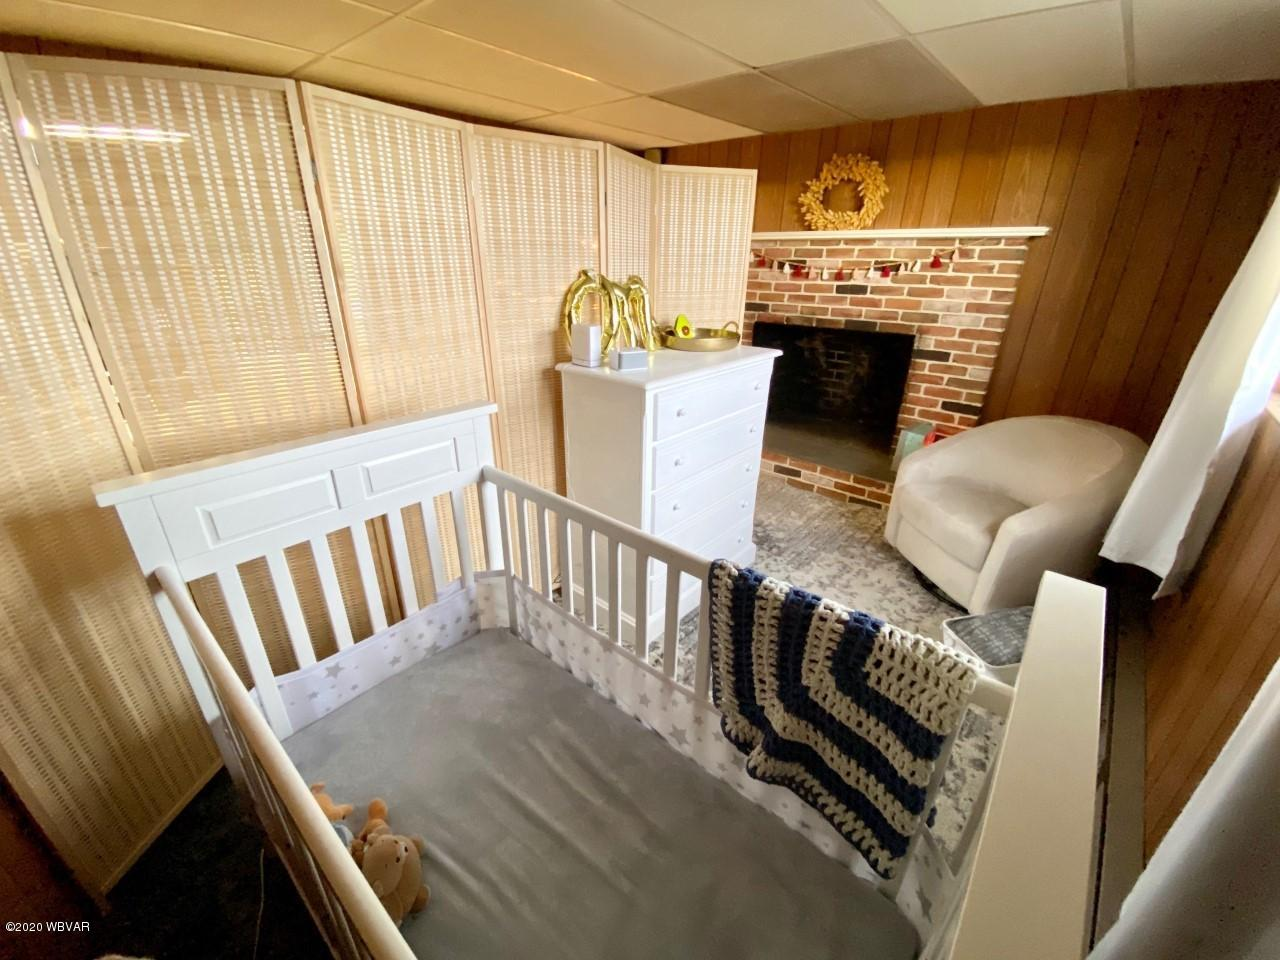 2365 QUAKER HILL ROAD, Cogan Station, PA 17728, 3 Bedrooms Bedrooms, ,1.75 BathroomsBathrooms,Residential,For sale,QUAKER HILL,WB-91355